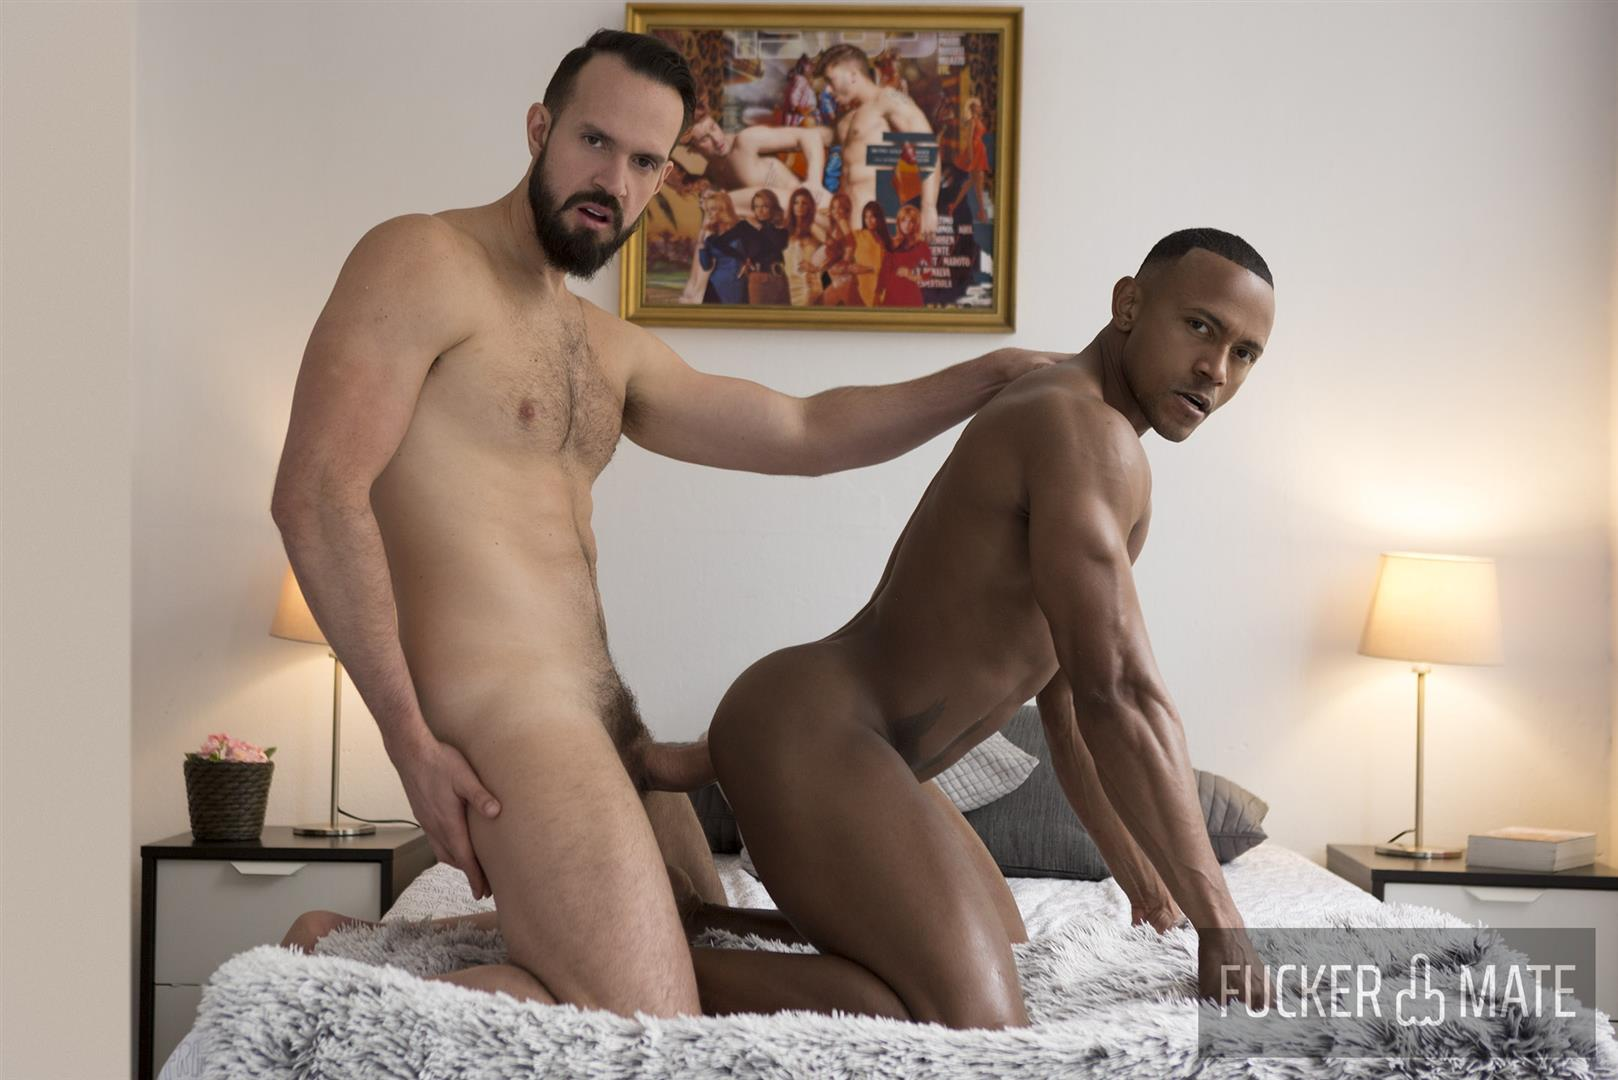 Fuckermate-Andy-Onassis-and-Santi-Konnor-Thick-Uncut-Cock-Brazilian-Bareback-Gay-Sex-12 Power Top Andy Onassis Breeds Santi Konnor With His Thick Uncut Cock